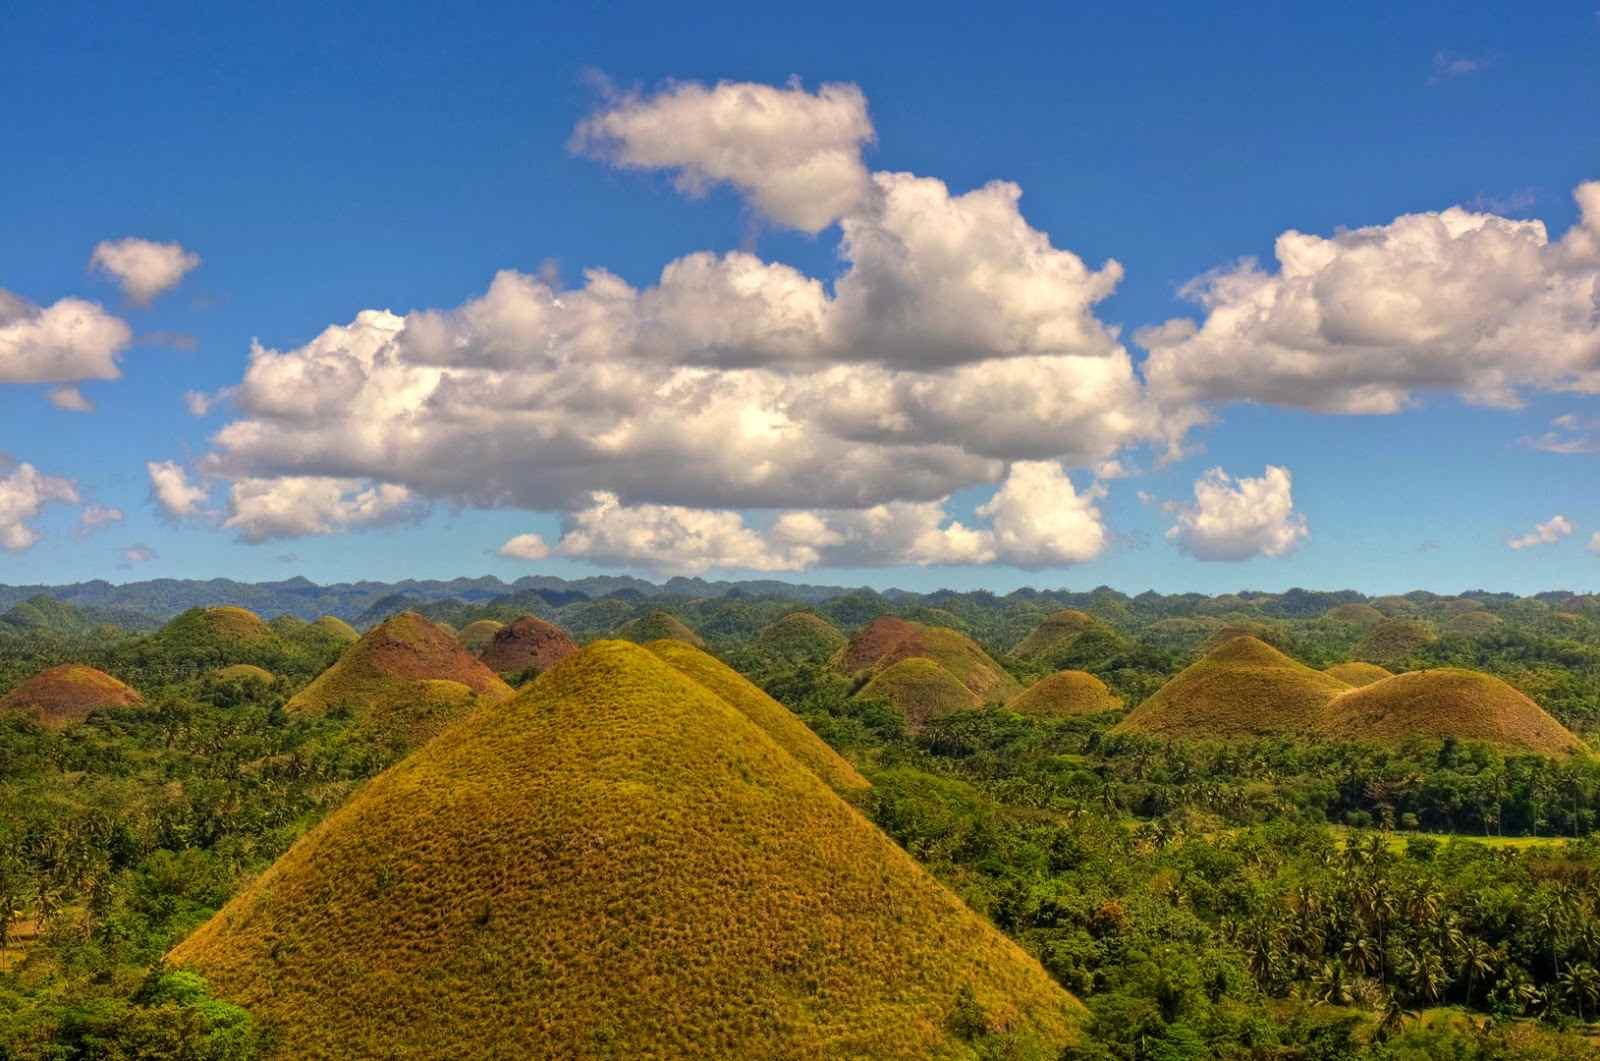 Le Chocolate Hills nelle Filippine